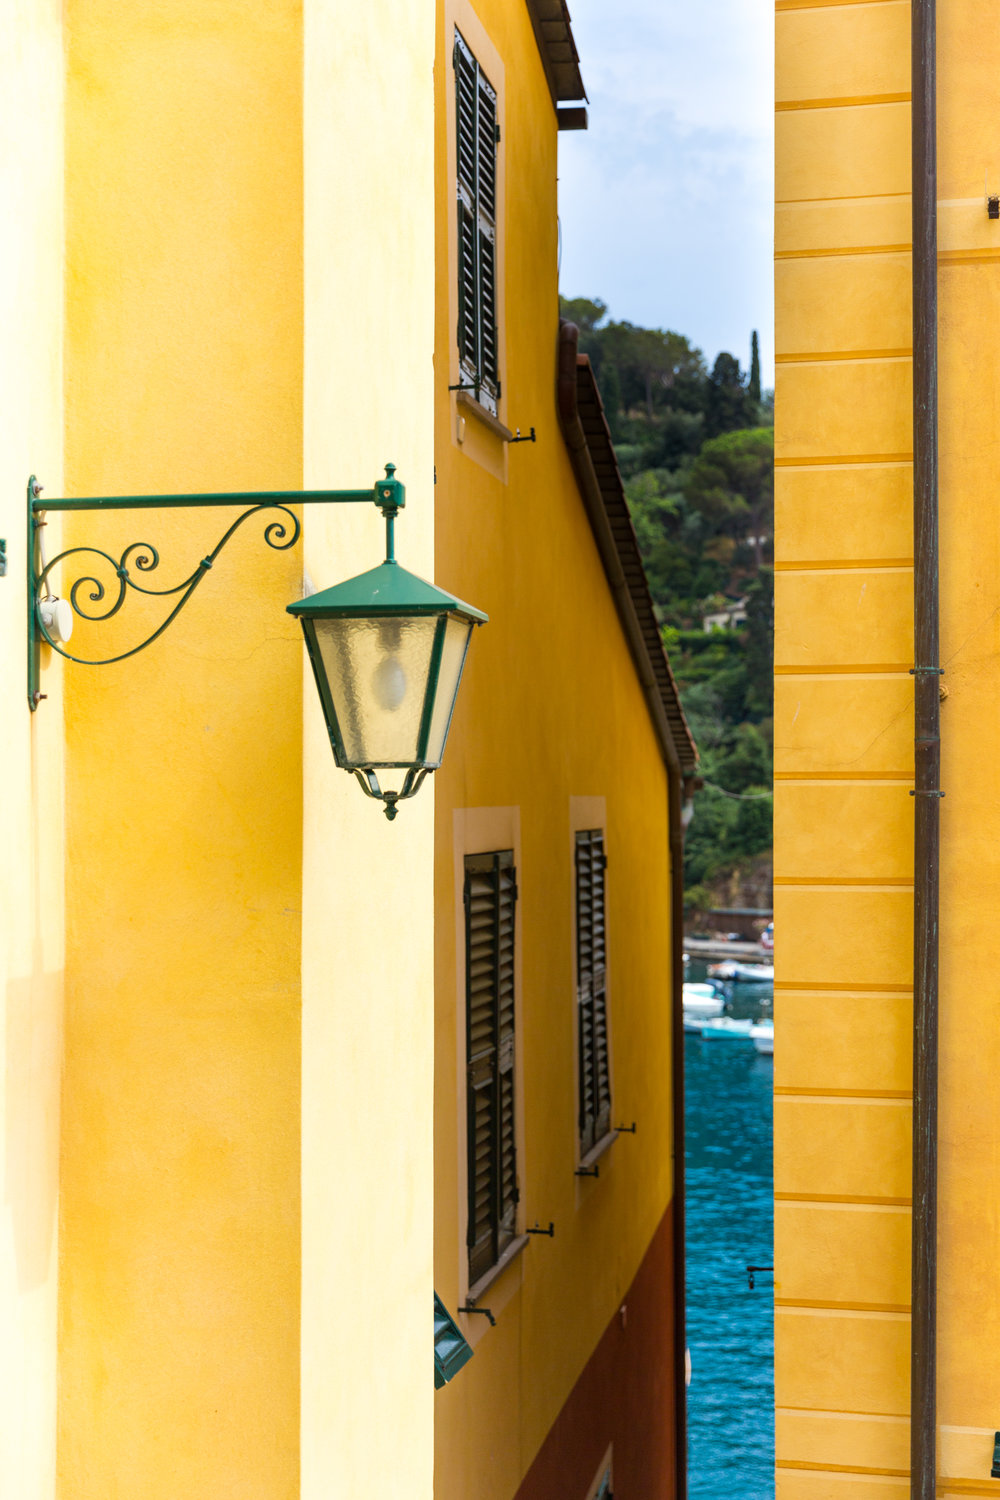 Italy Liguria Portofino Summer Travel.jpg